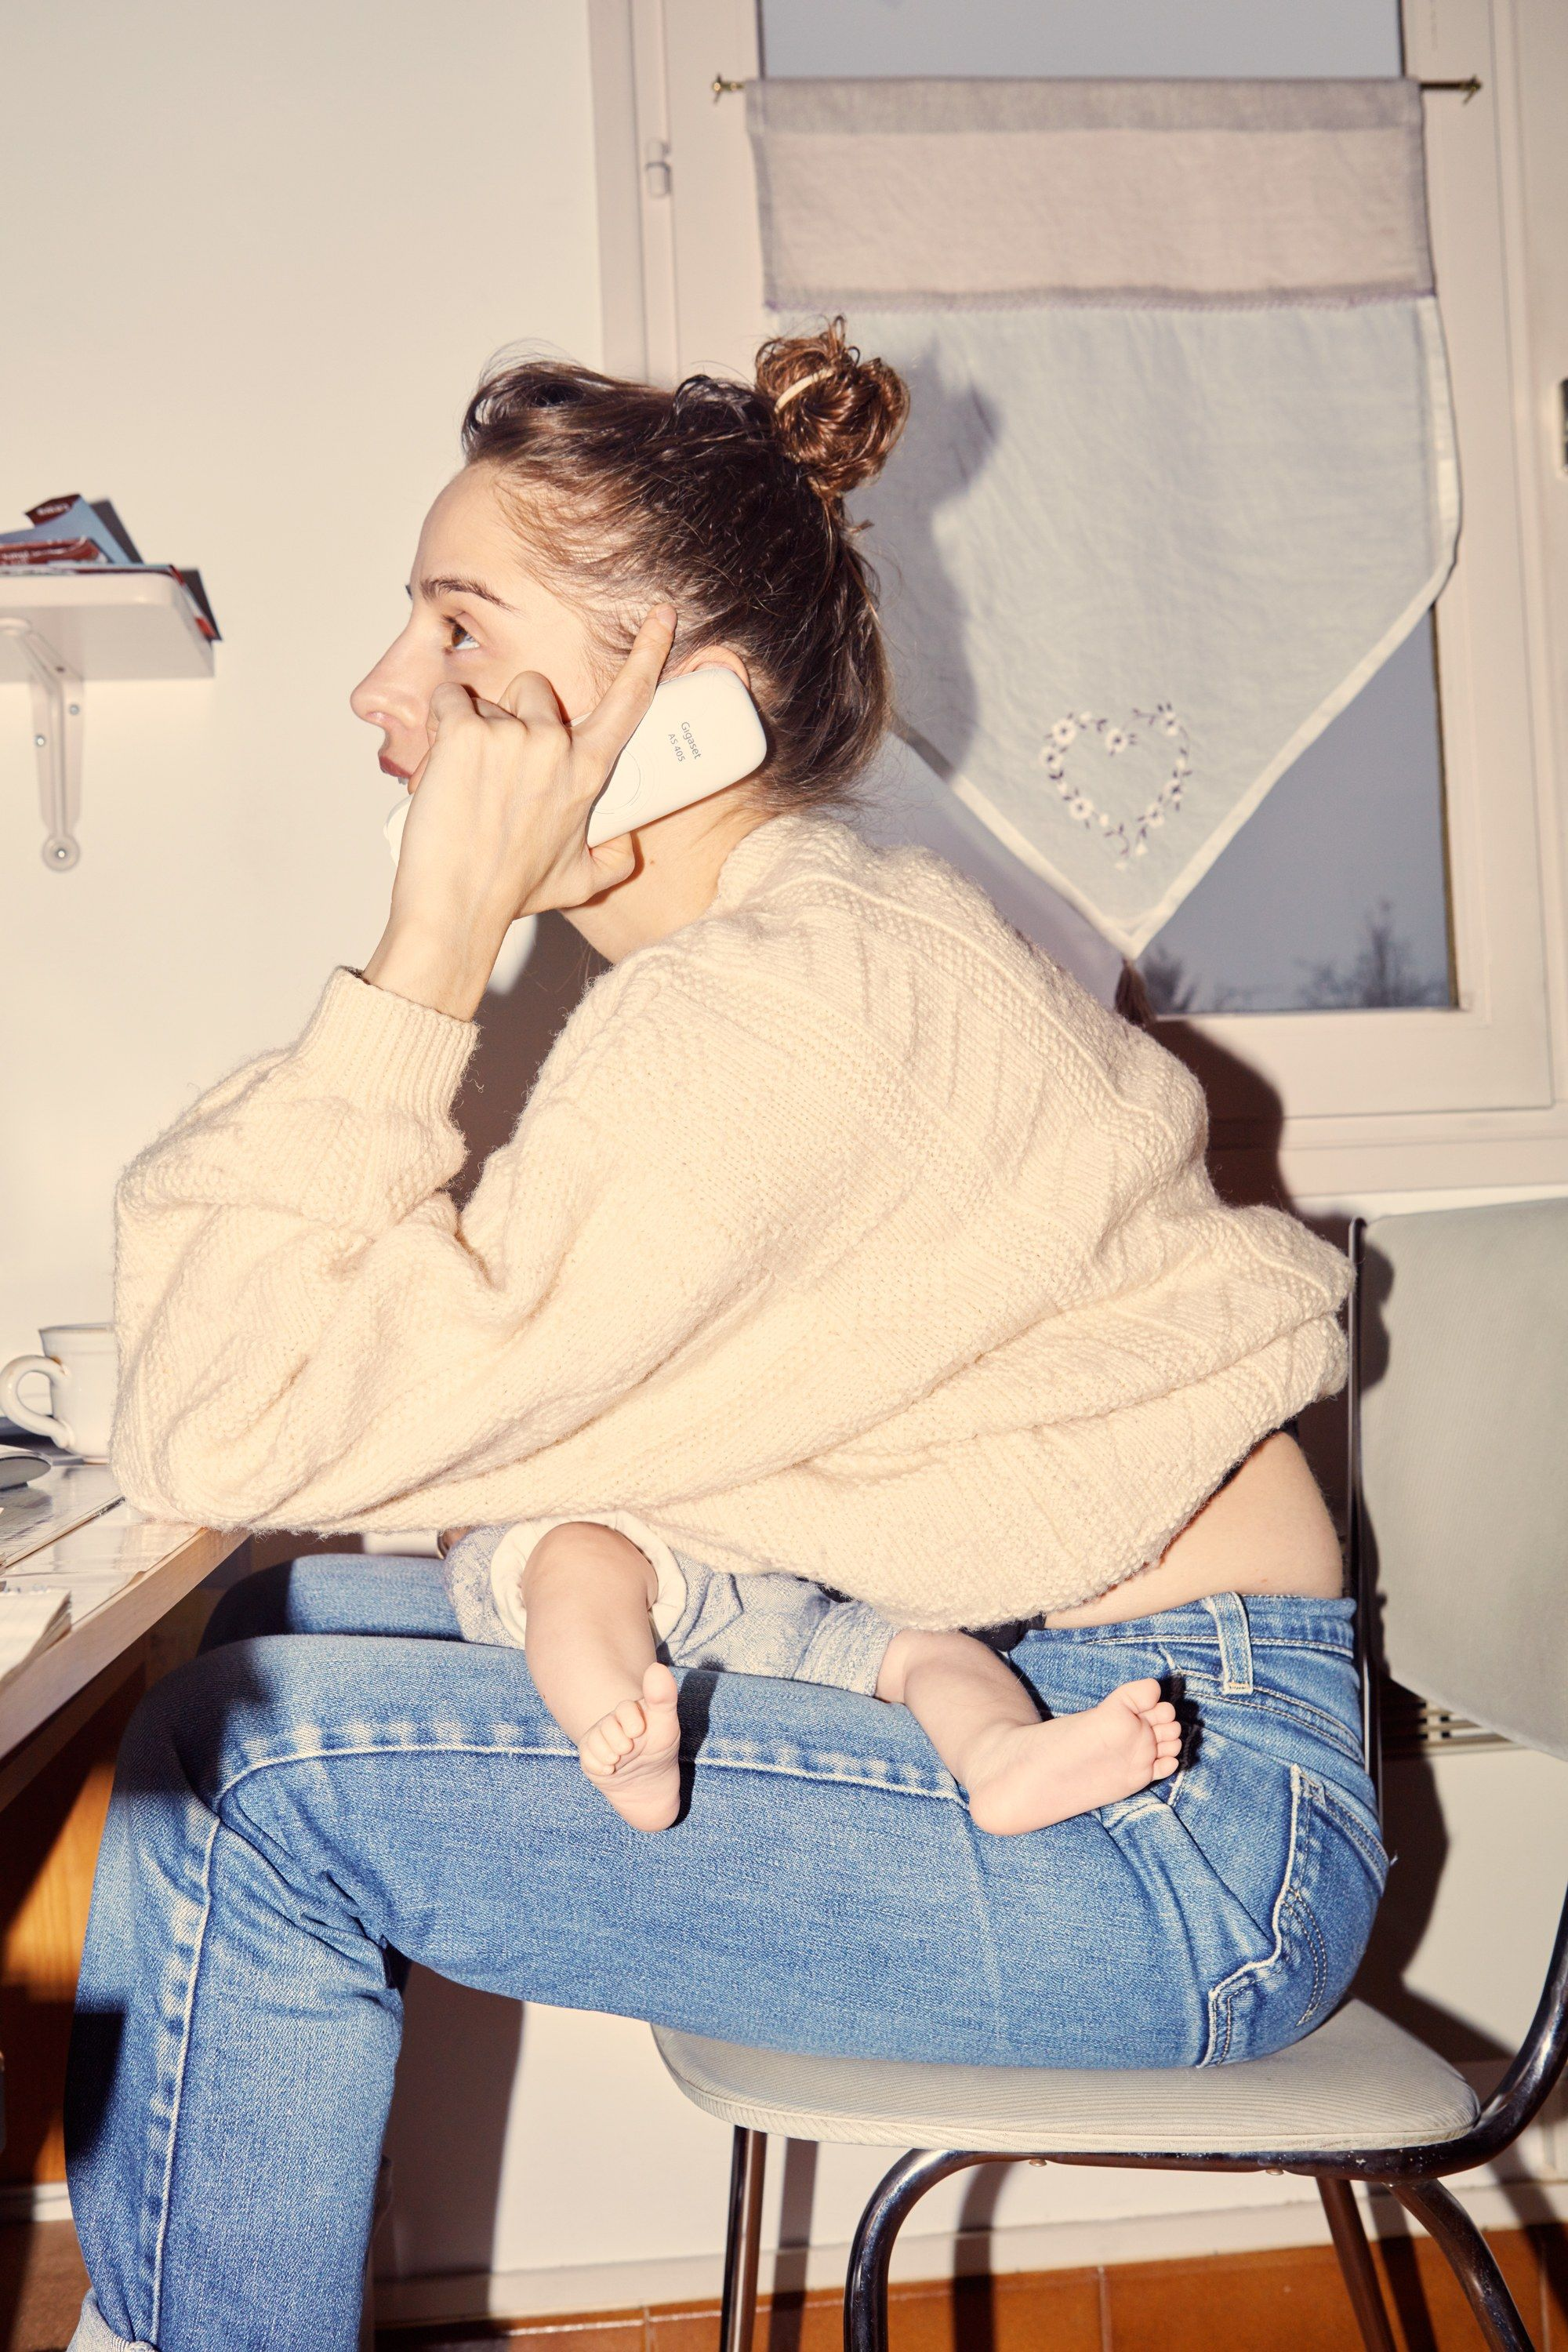 The Hidden Fashion Photography In These Pictures Of A Mother